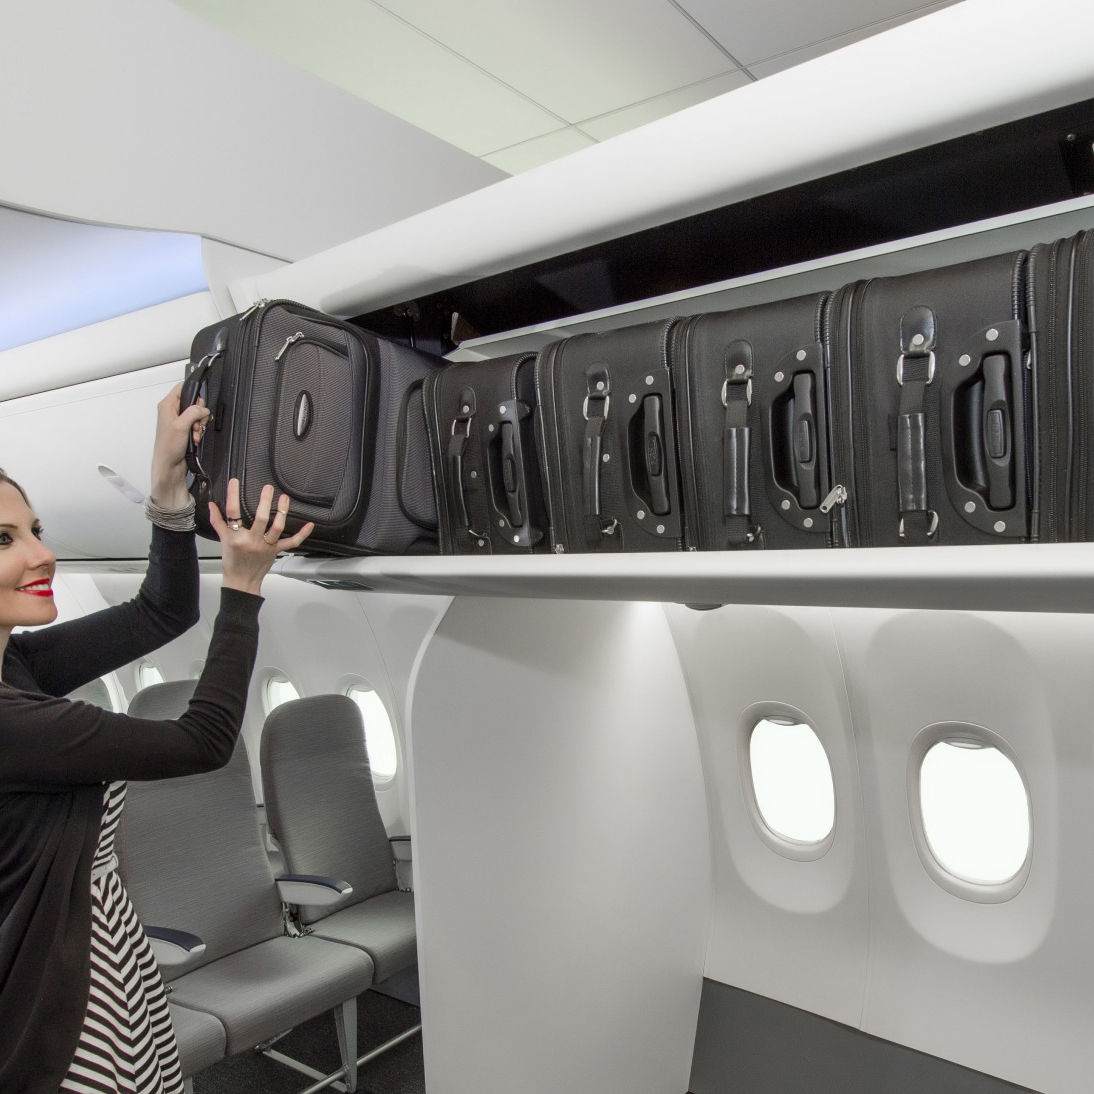 Boeing space bins l3tkuq